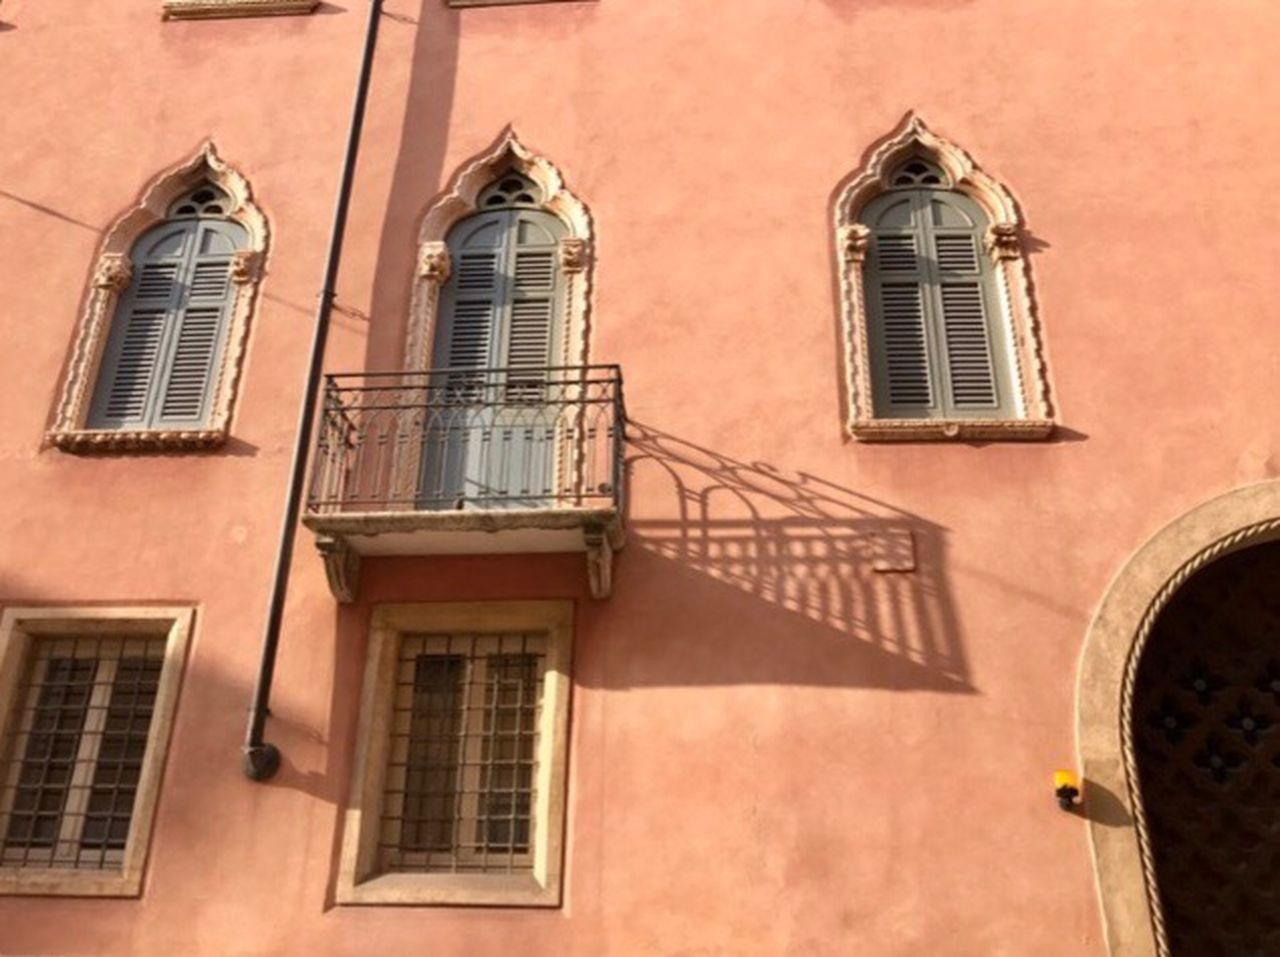 Building Exterior Architecture Built Structure Window Building Low Angle View Residential Building Outdoors Light And Shadow Façade Architecture_collection Landscape_Collection Travel Landscape Getting Inspired Exceptional Photographs Landscapes Pink Color From My Point Of View Landscape_photography EyeEm Best Shots City Balcony Day in Verona 🇮🇹